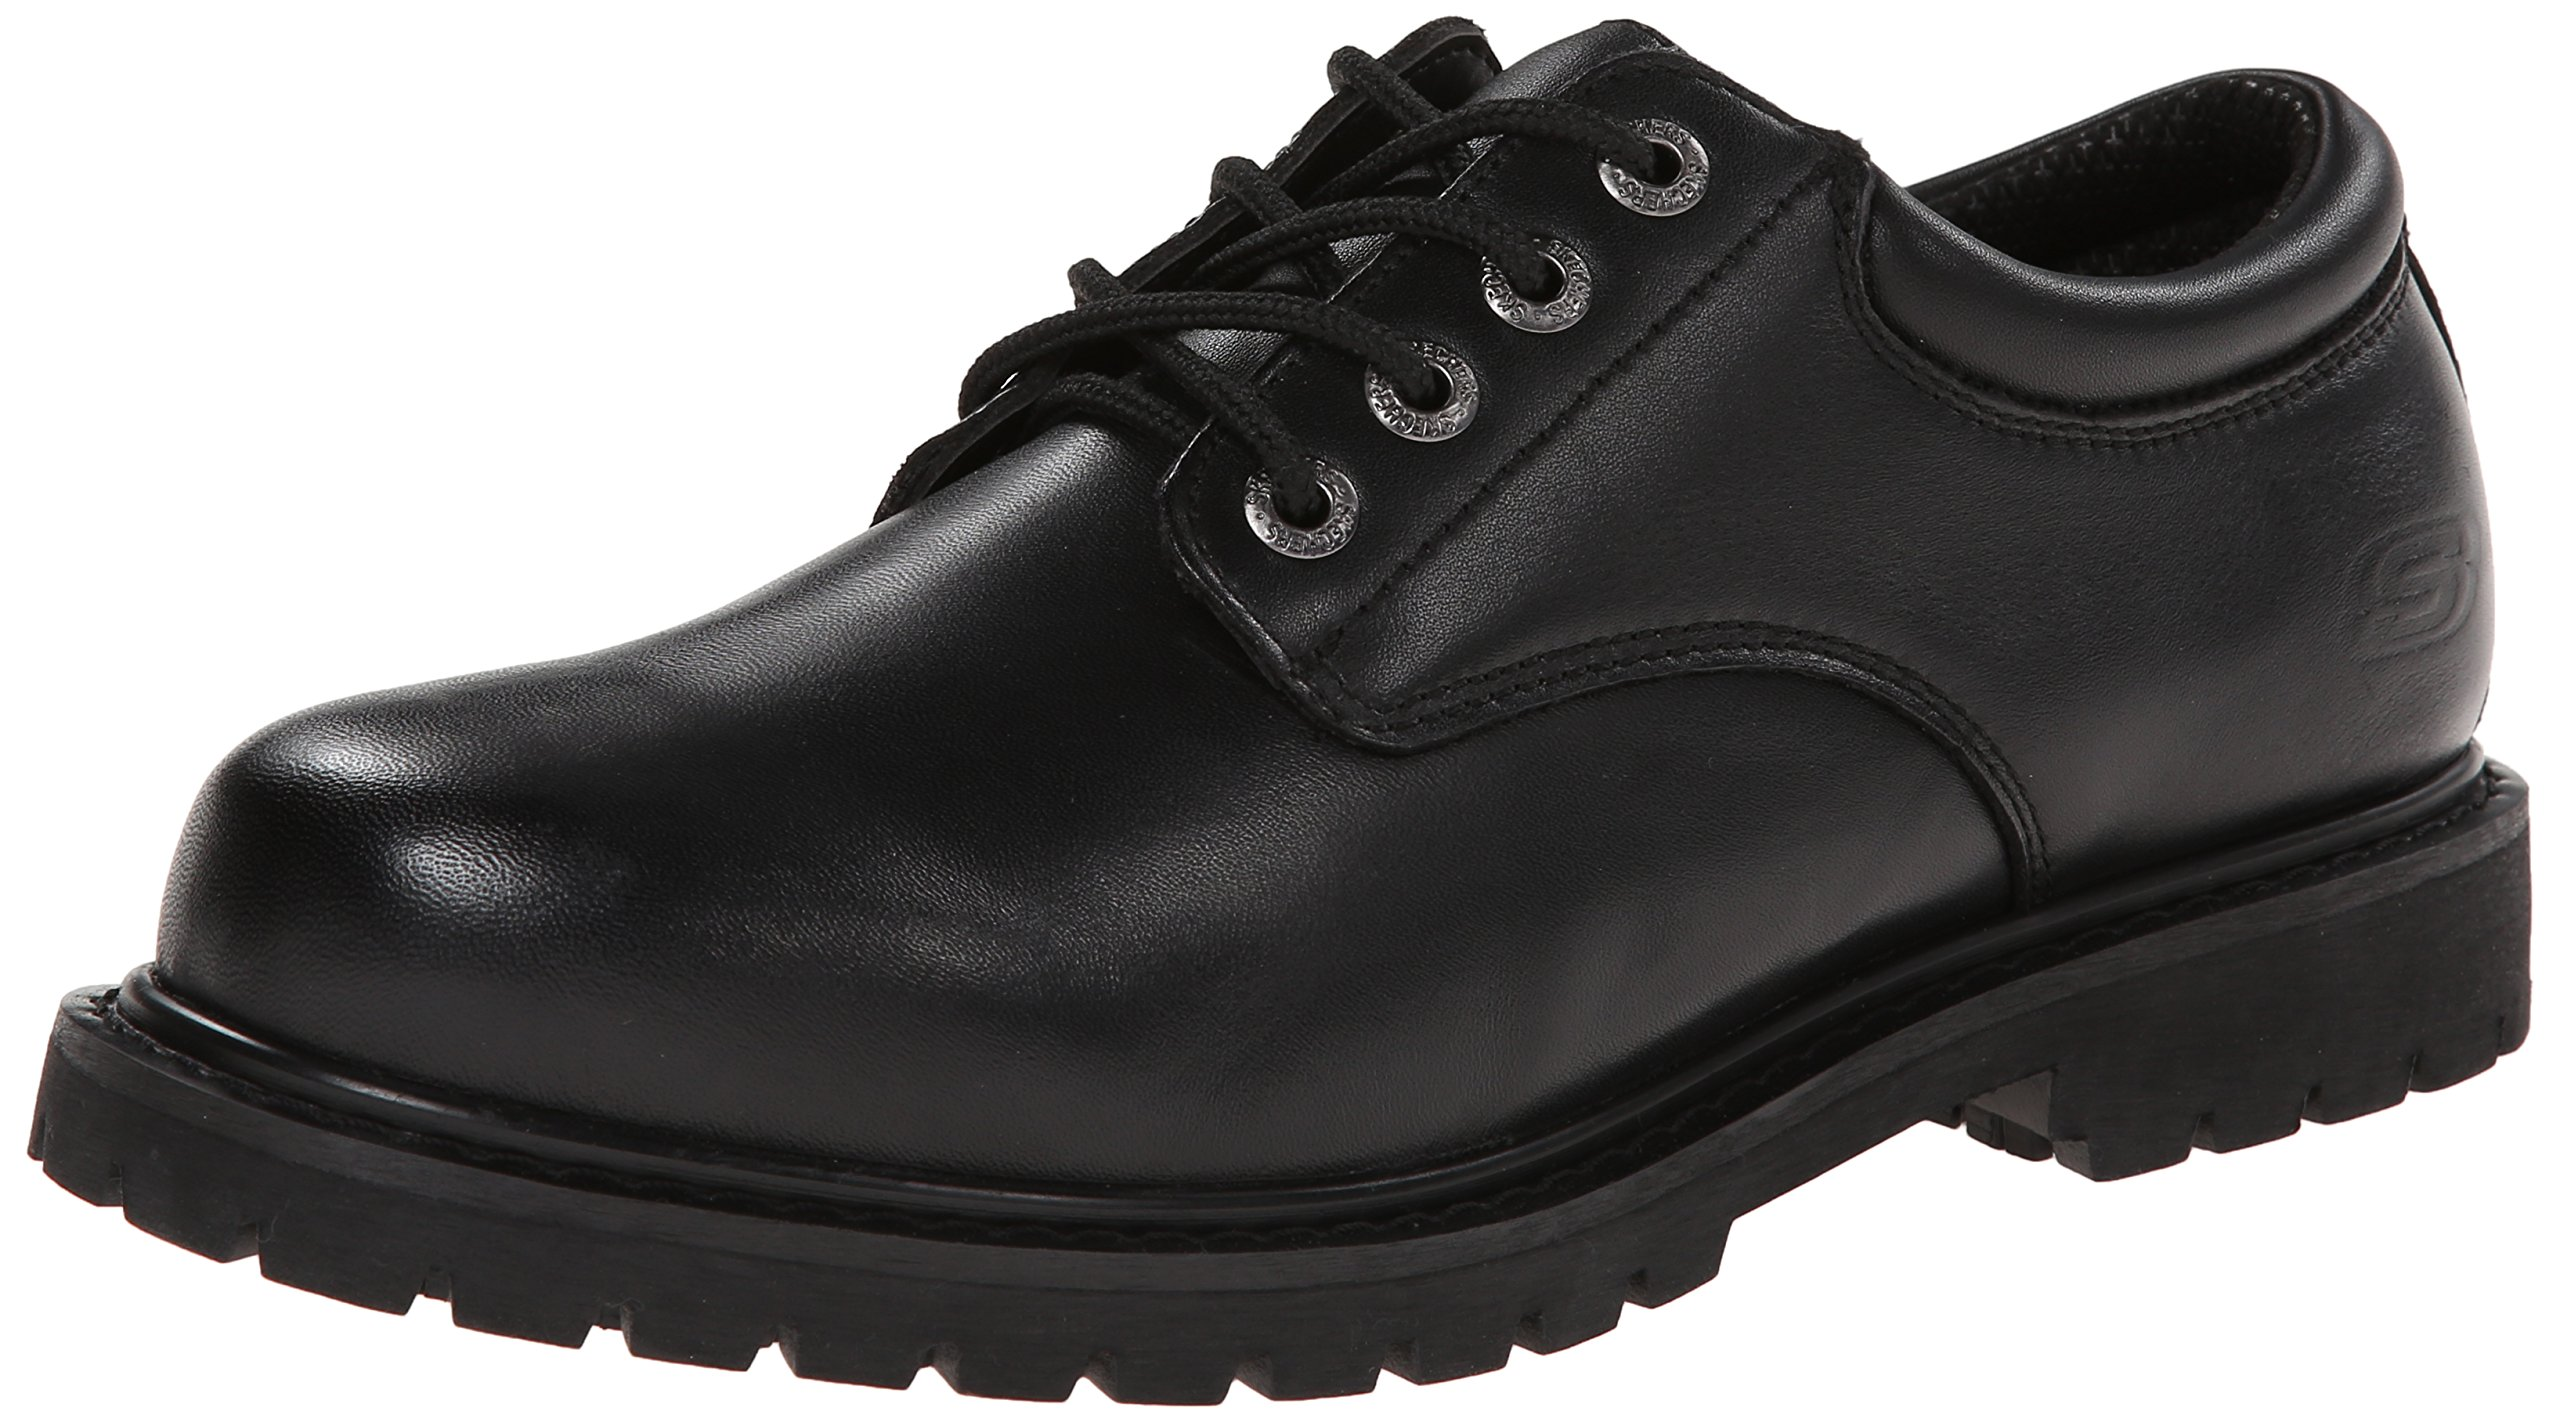 Skechers for Work Men's Cottonwood Elks Slip Resistant Shoe,Black,10.5 M US